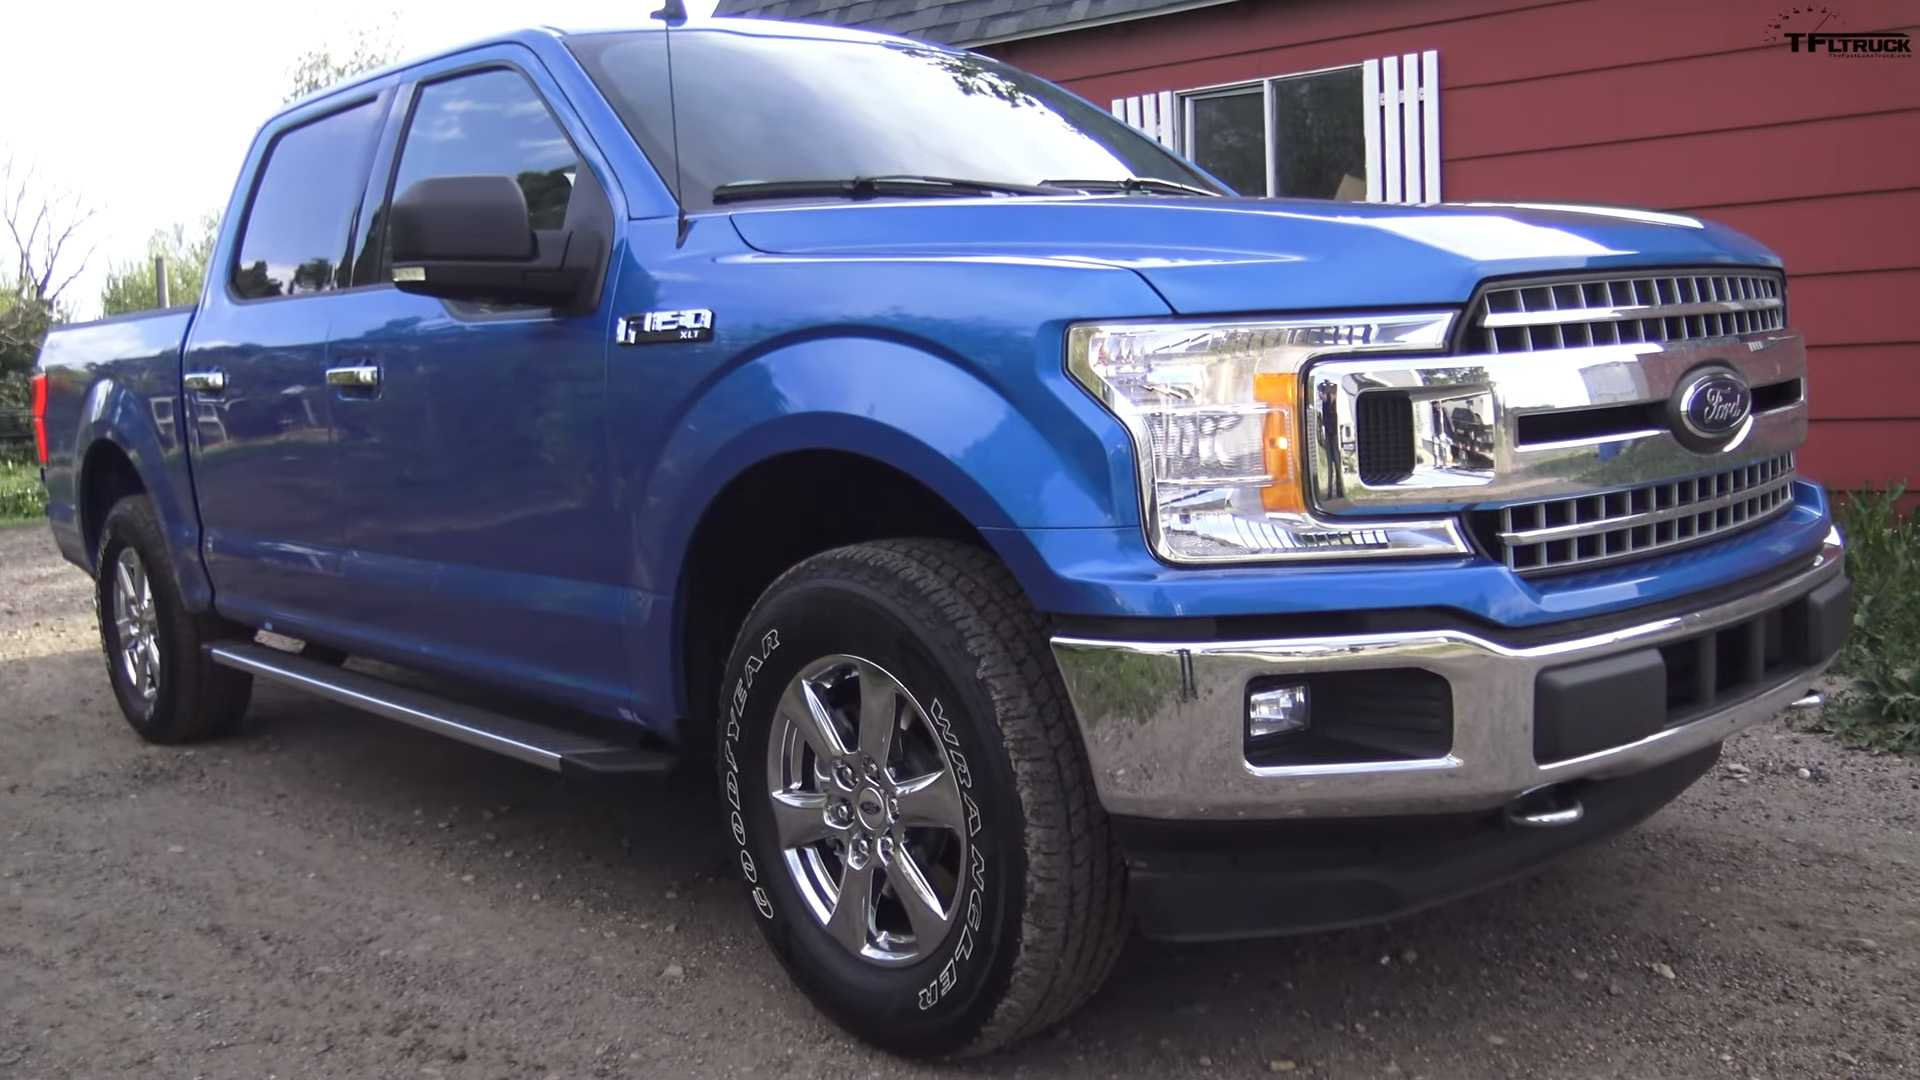 Ford F 150 Mpg Towing Test Pits Coyote V8 Against Ecoboost V6